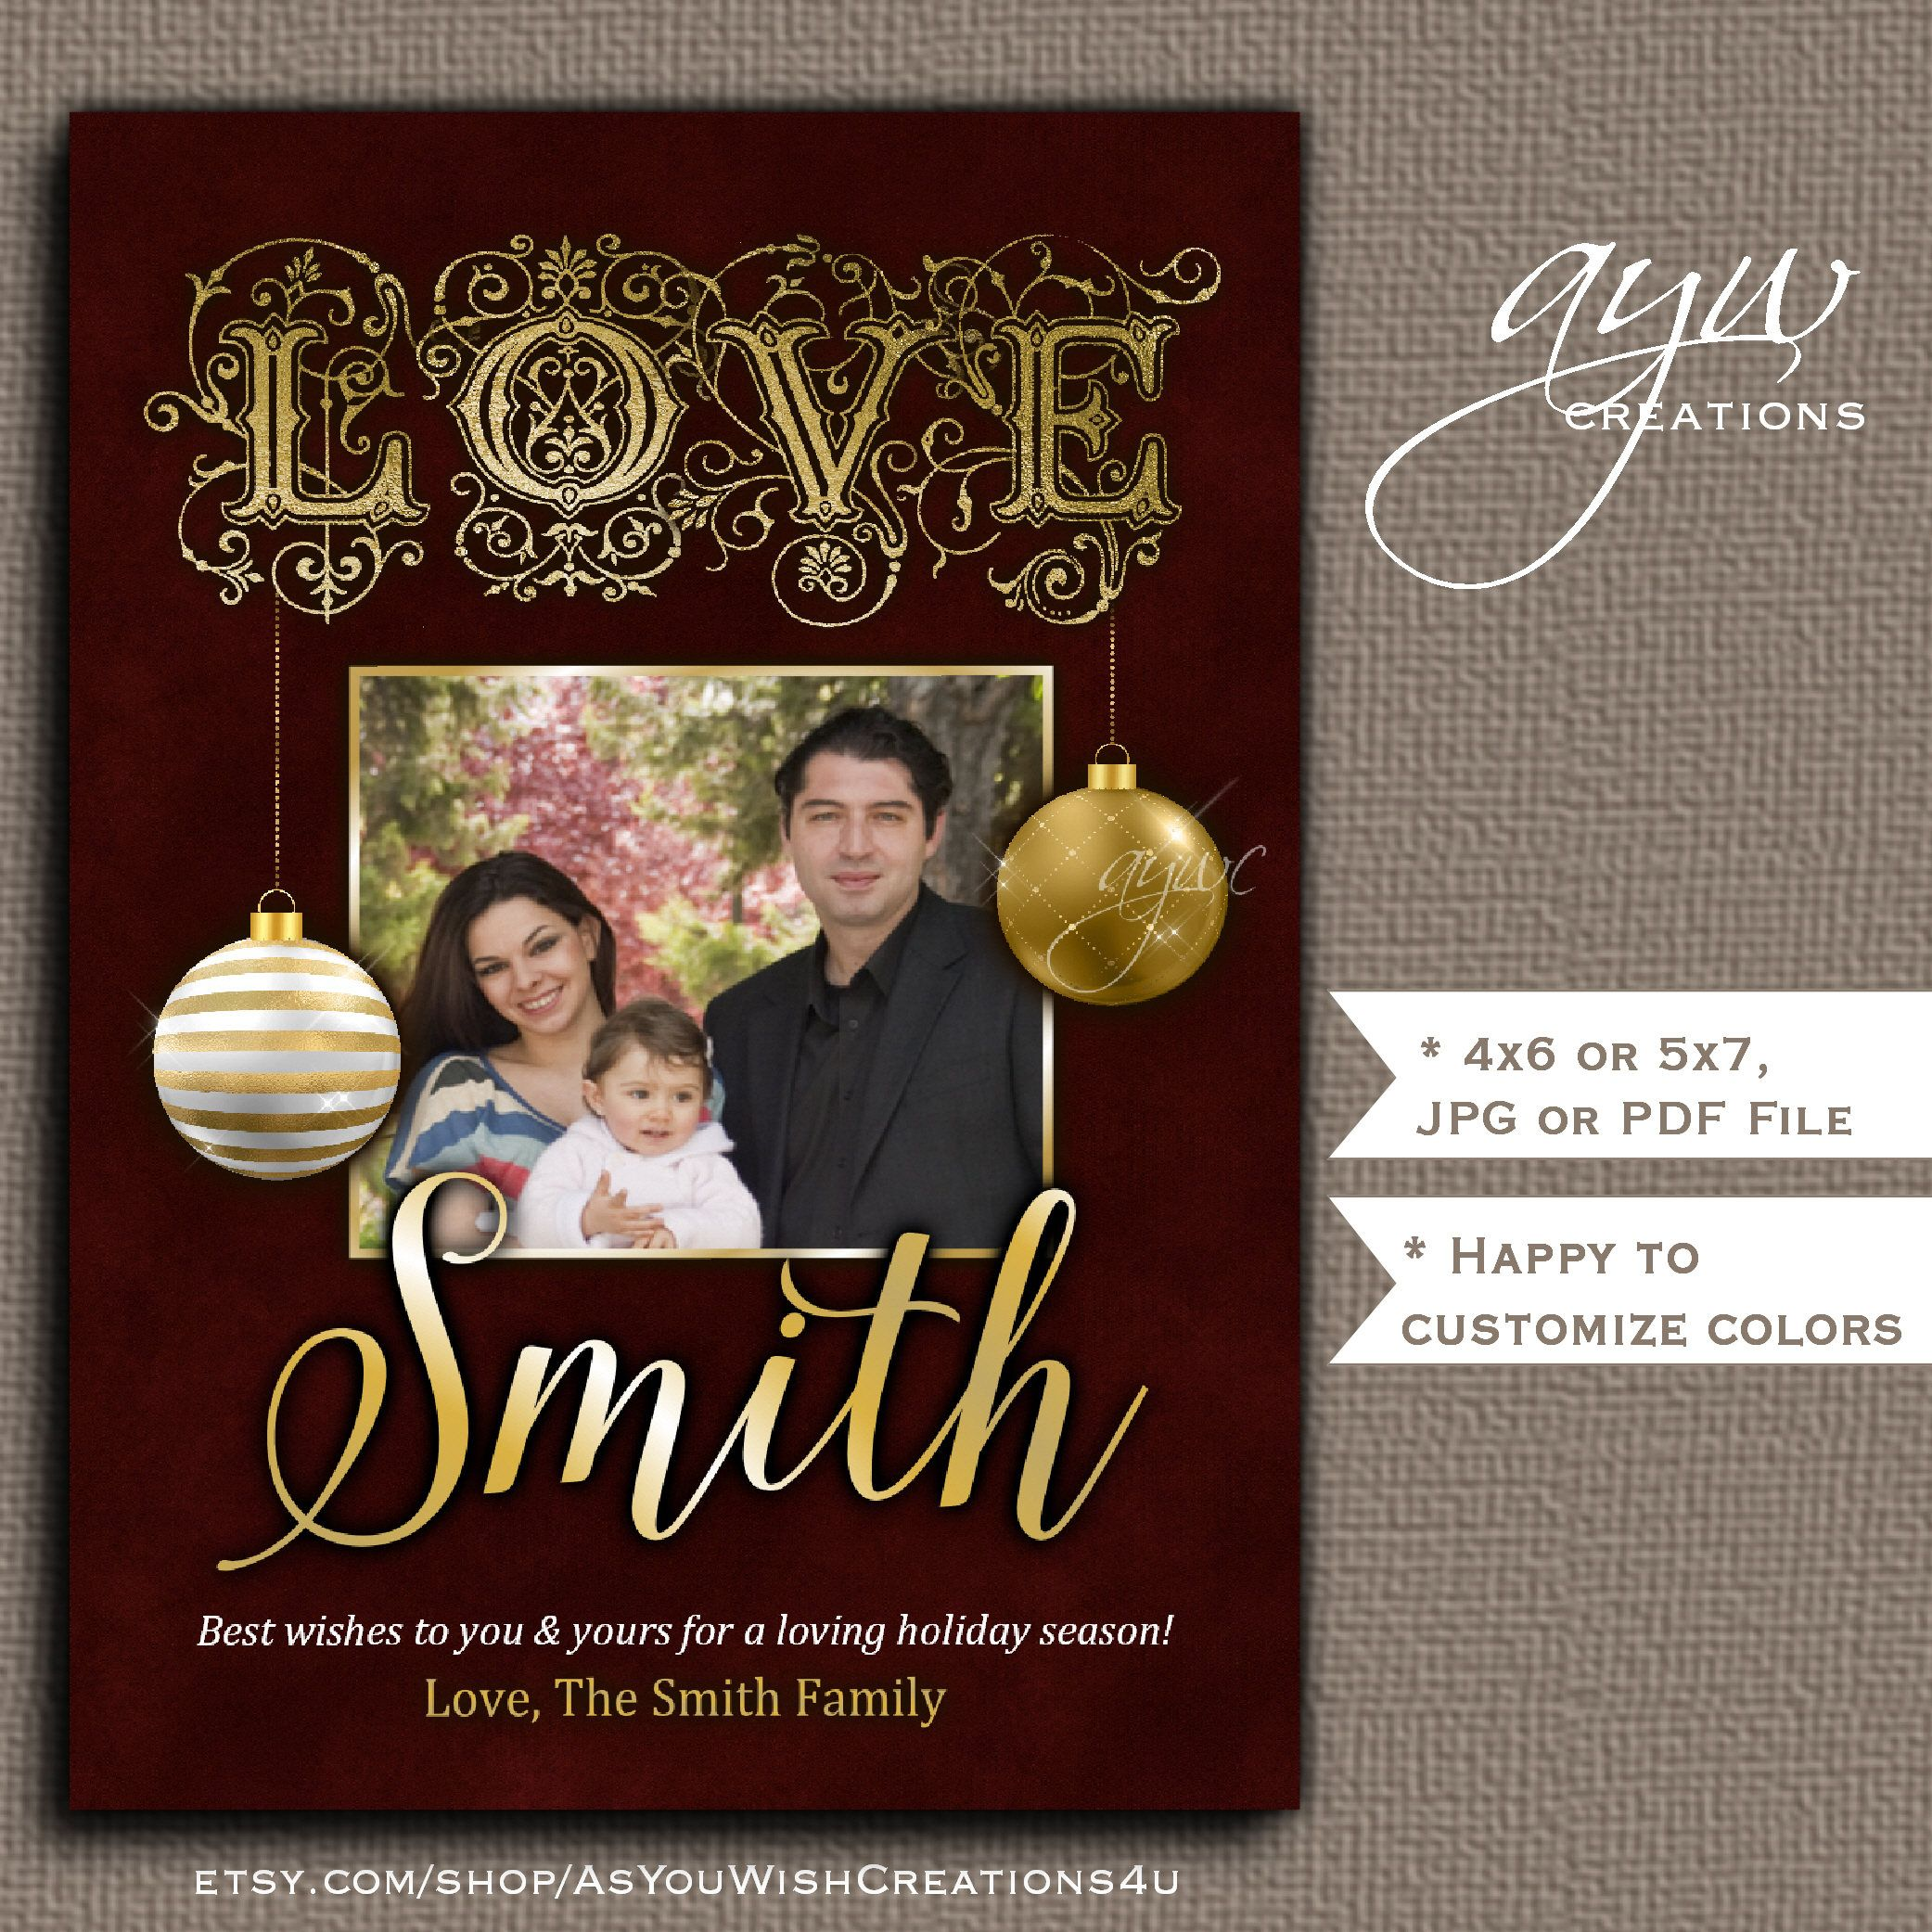 LOVE Christmas Card Printable with Ornaments and Family